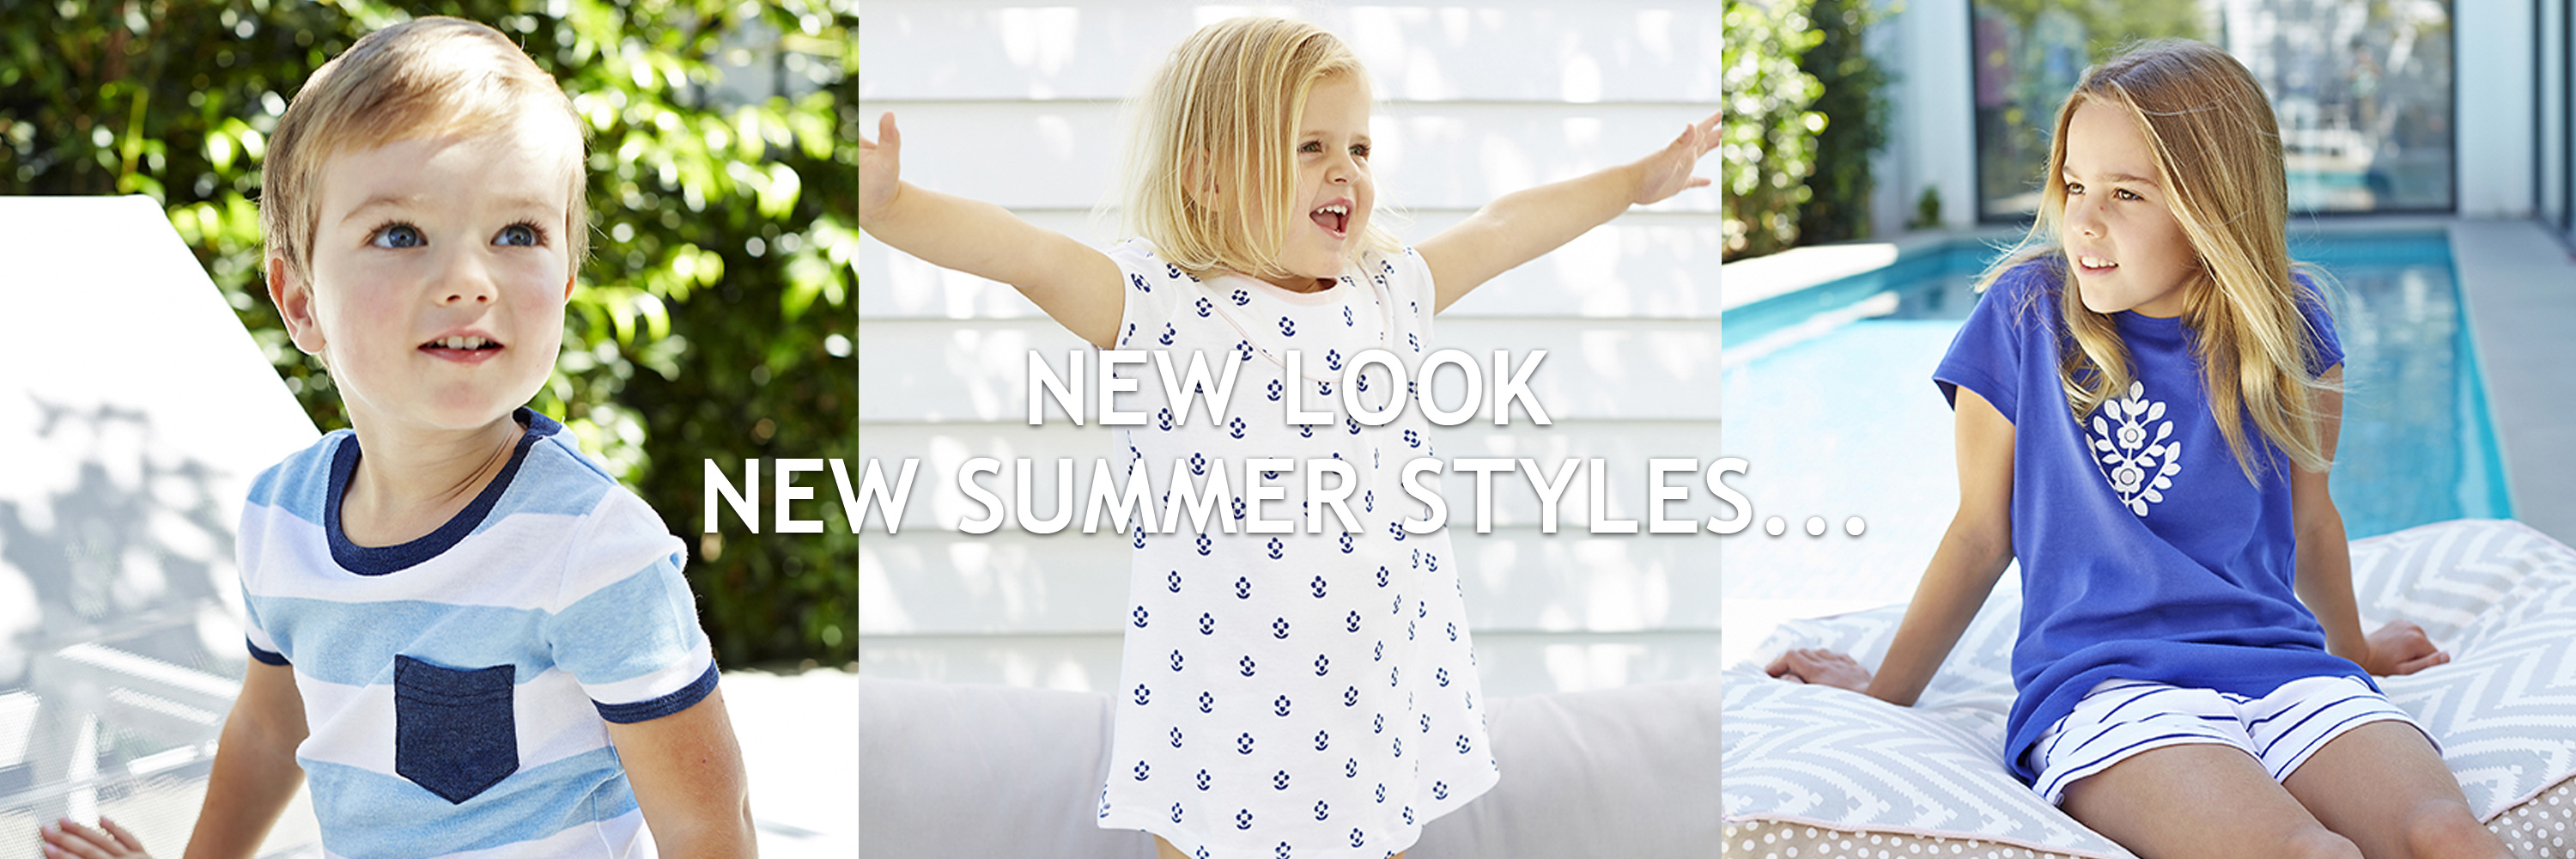 New Look New Summer Styles